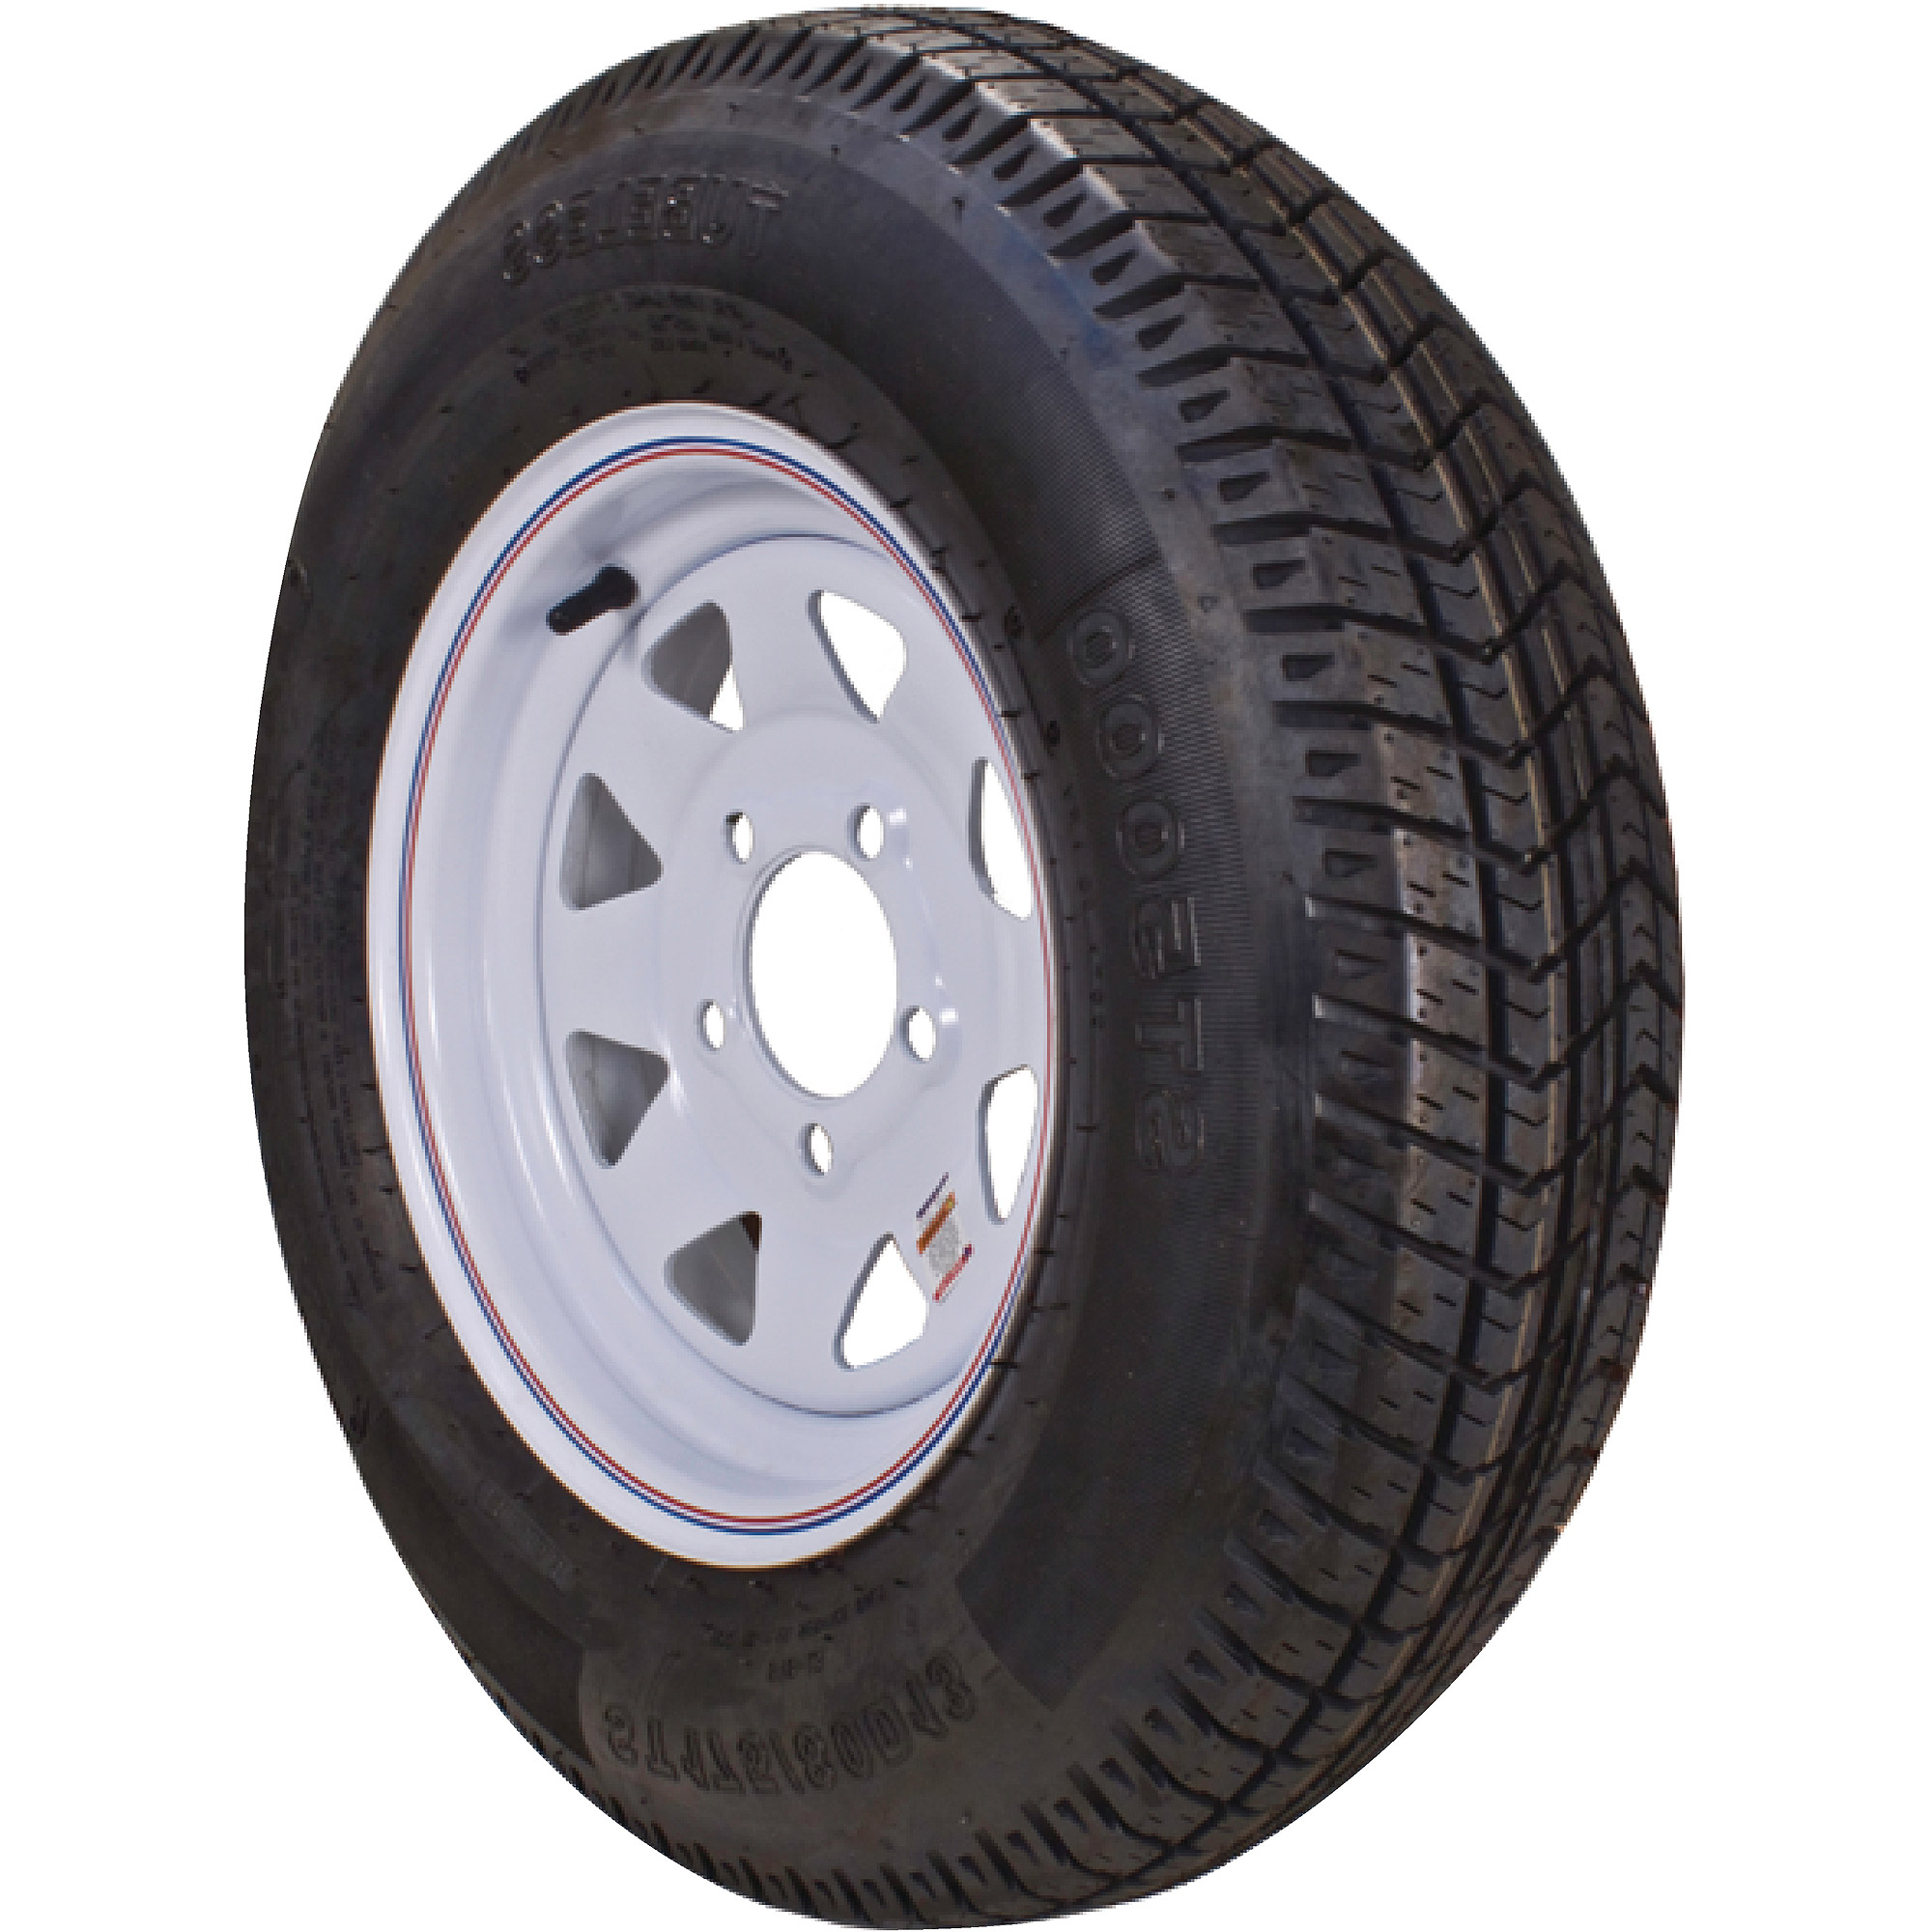 Loadstar Bias Tire and Wheel (Rim) Assembly 480-12 5 Hole 4 Ply